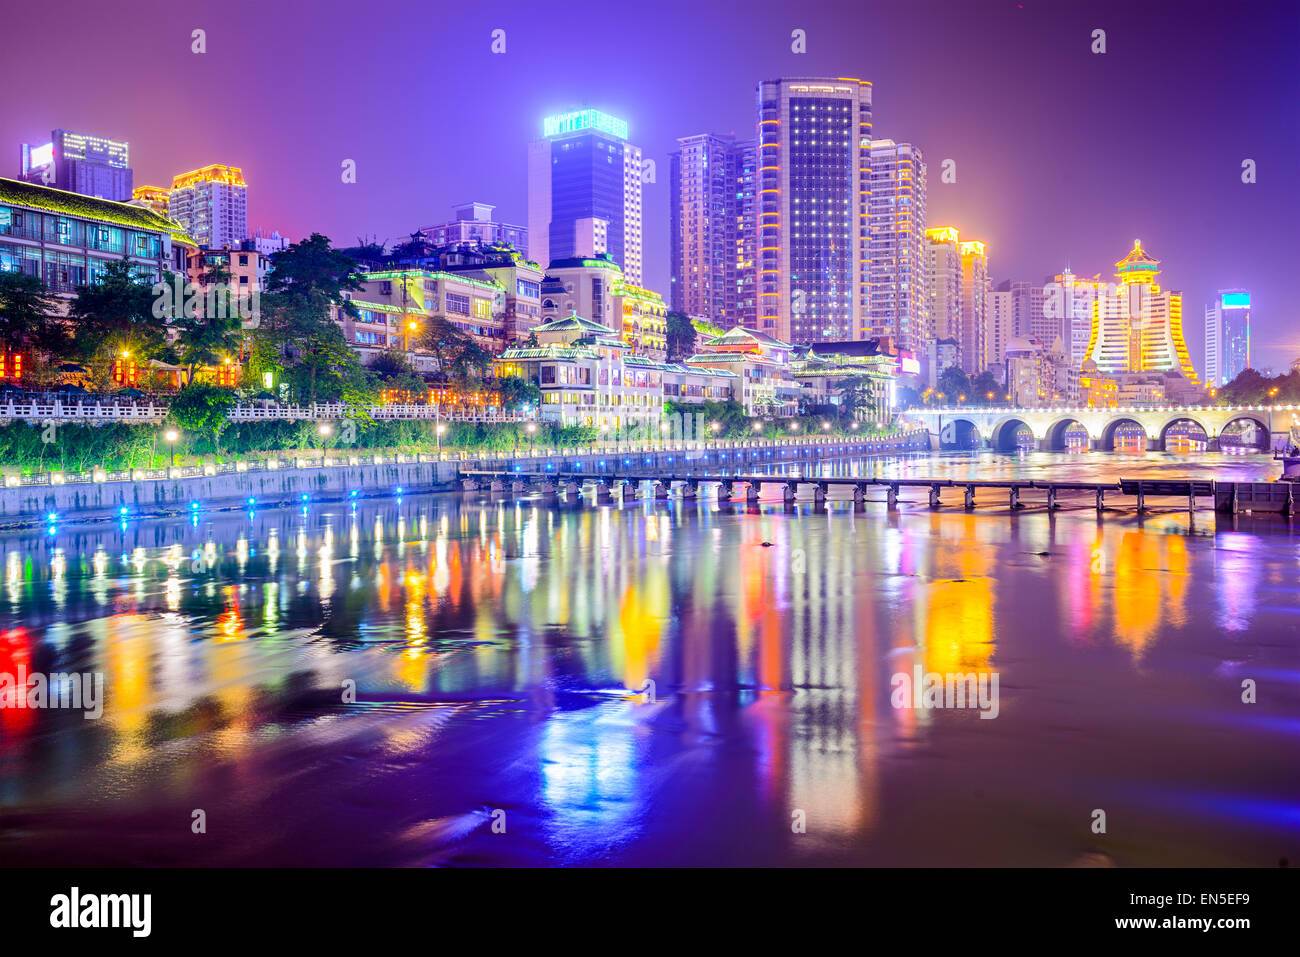 Guiyang, China cityscape on the river. - Stock Image